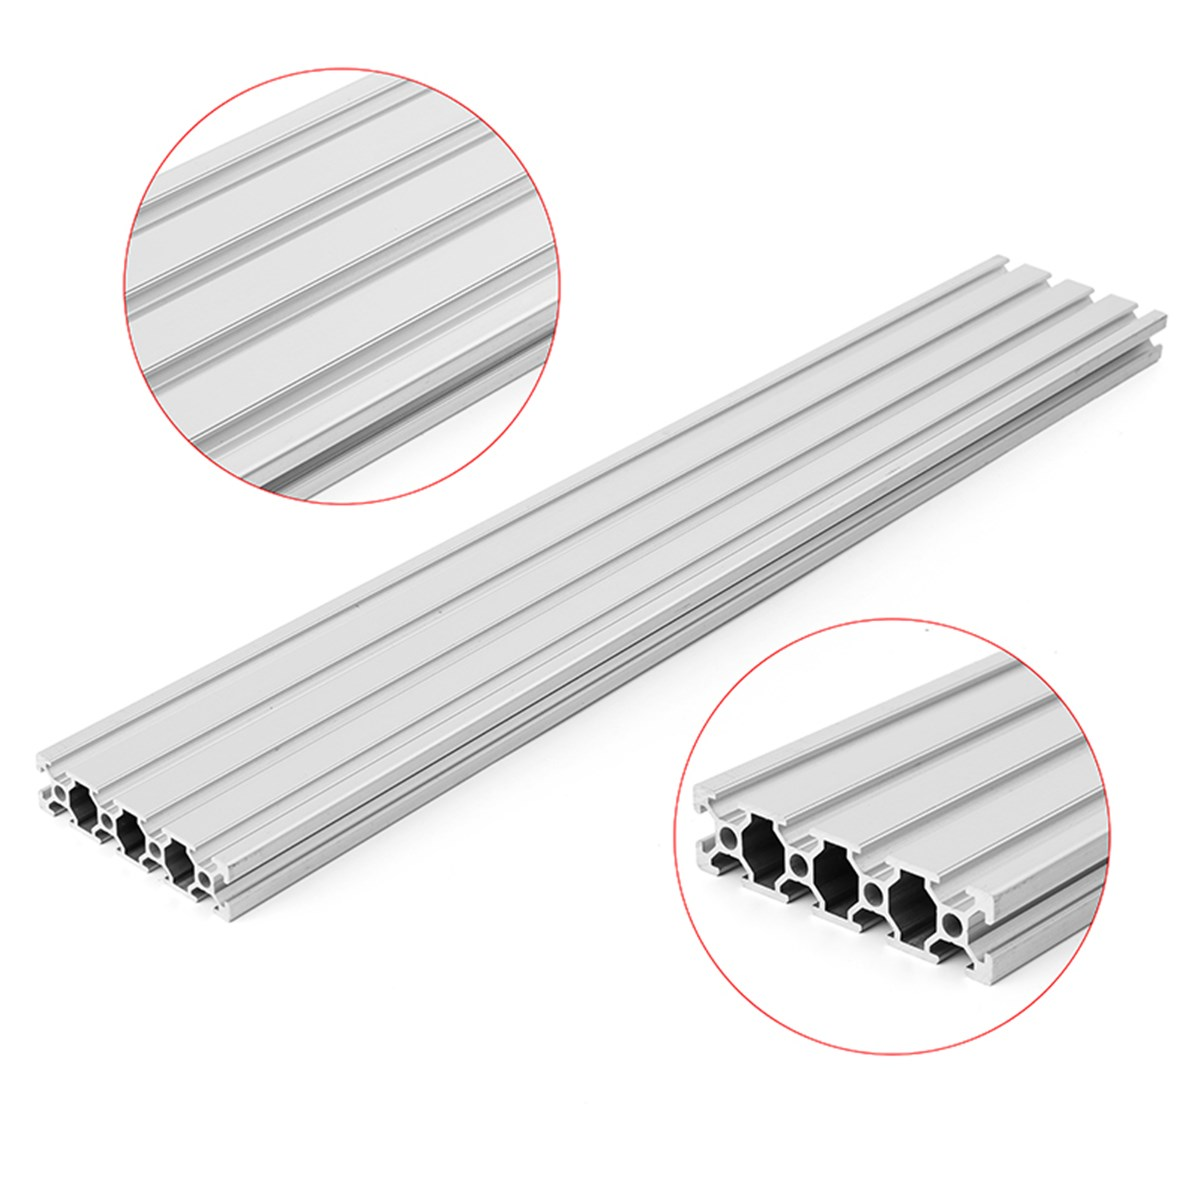 SULEVE New 1PC HL2080 350mm/500mm Length <font><b>2080</b></font> T-Slot Aluminum Profiles Extrusion Frame For CNC 3D Printer Parts DIY High Quality image